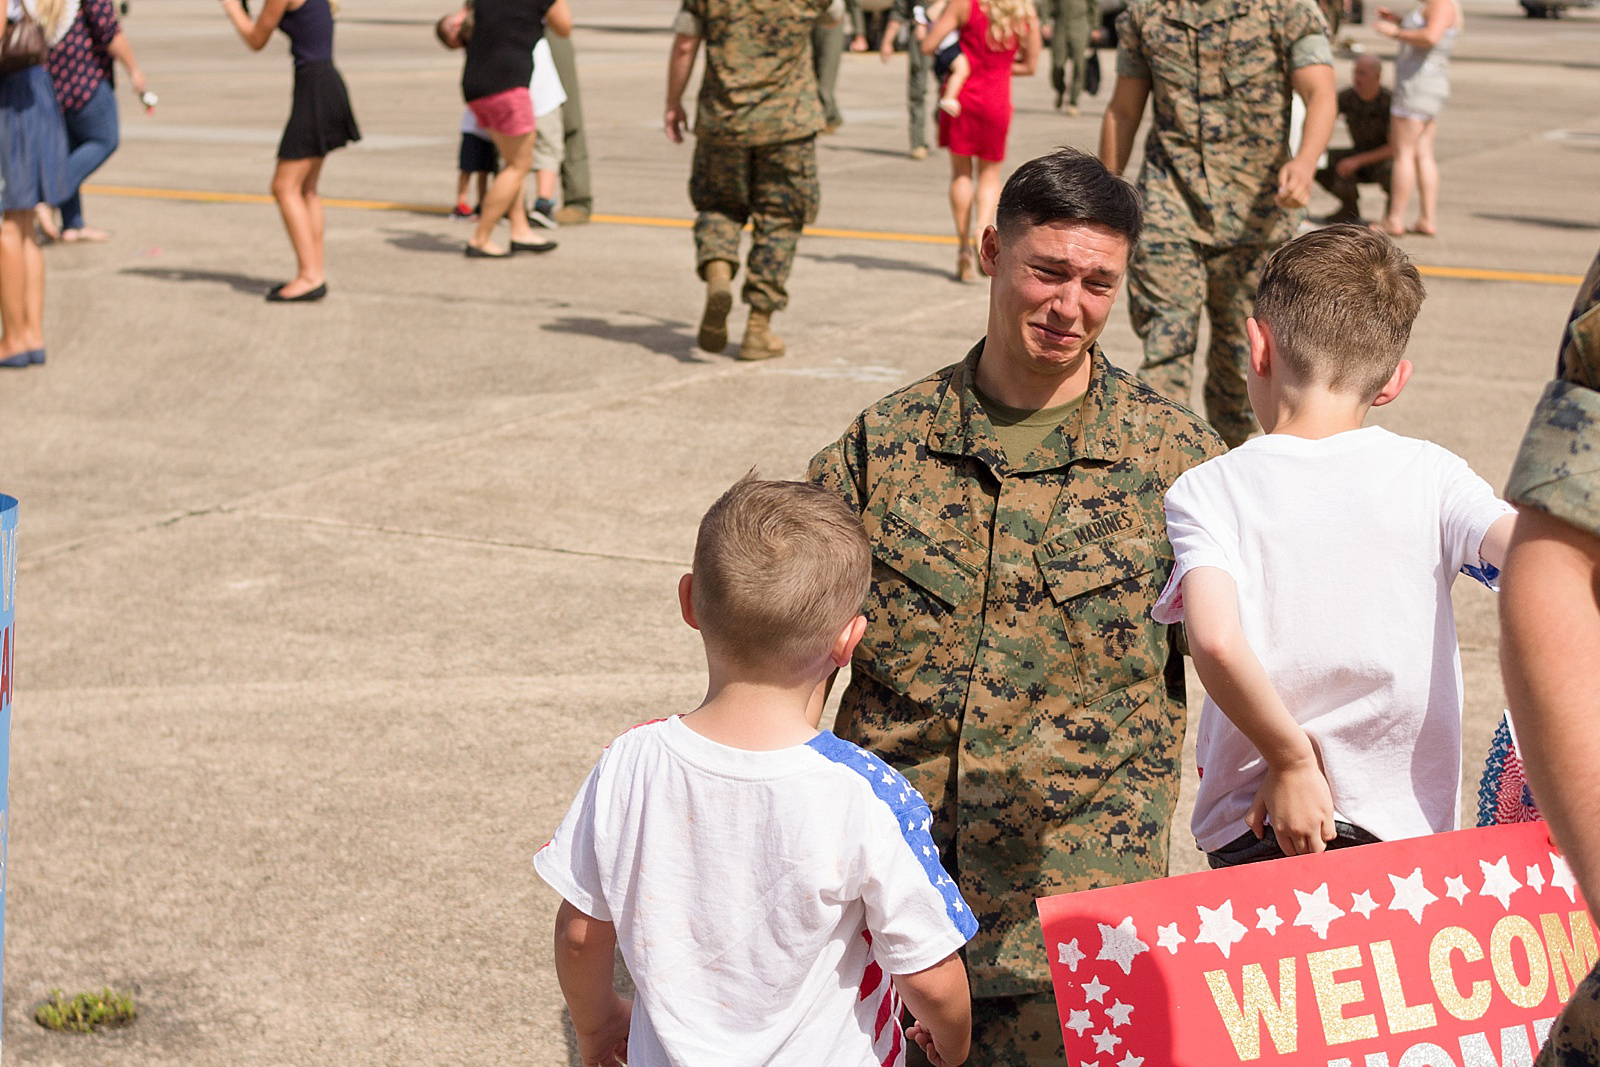 Marine Corps C-130 homecoming photography at MCAS Cherry Point from North Carolina portrait photographer Lauren Nygard